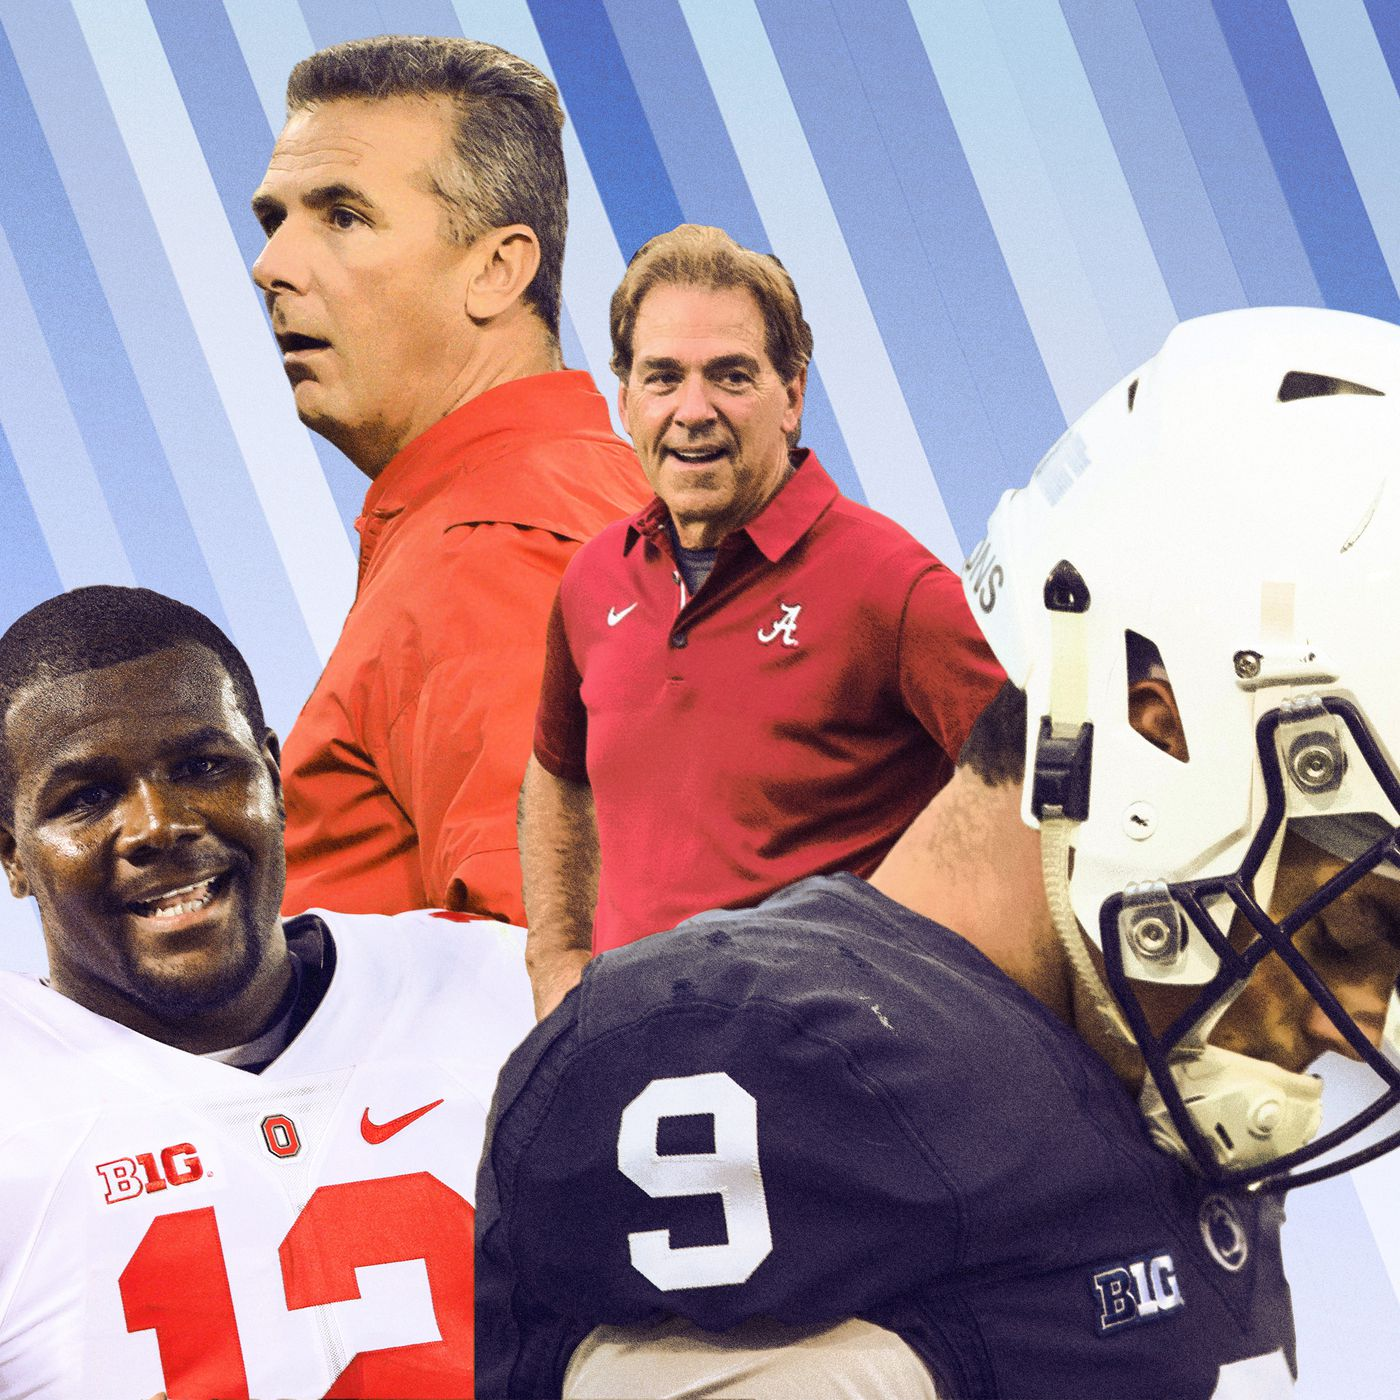 df1722cd Lessons From Four Years of College Football Playoff Selection Committee  Decisions